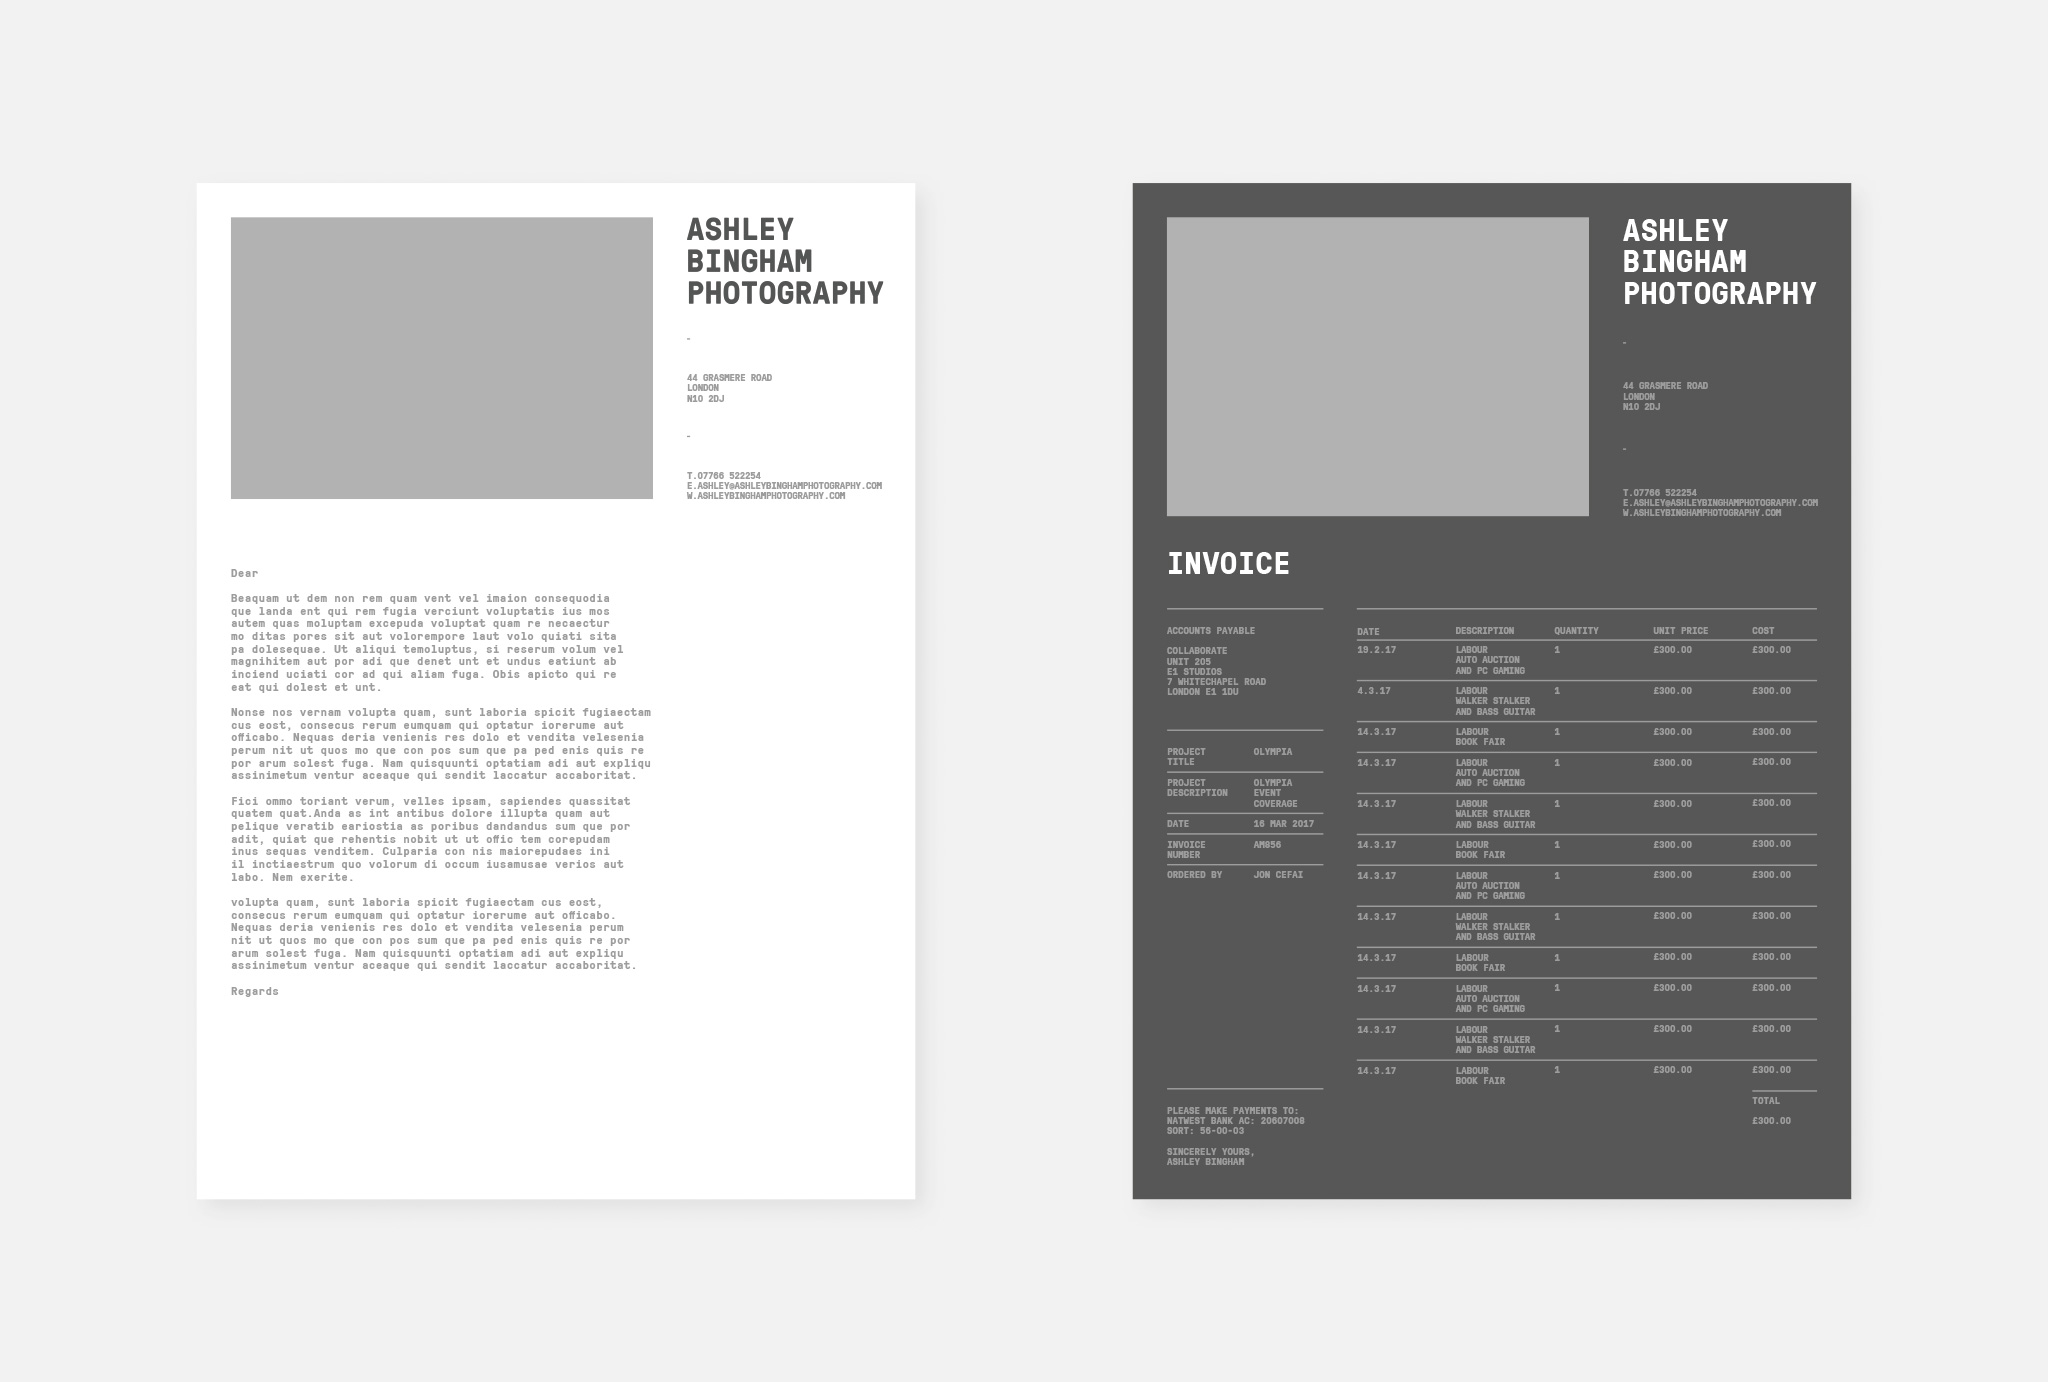 letter in white and invoice in dark grey with a light grey box